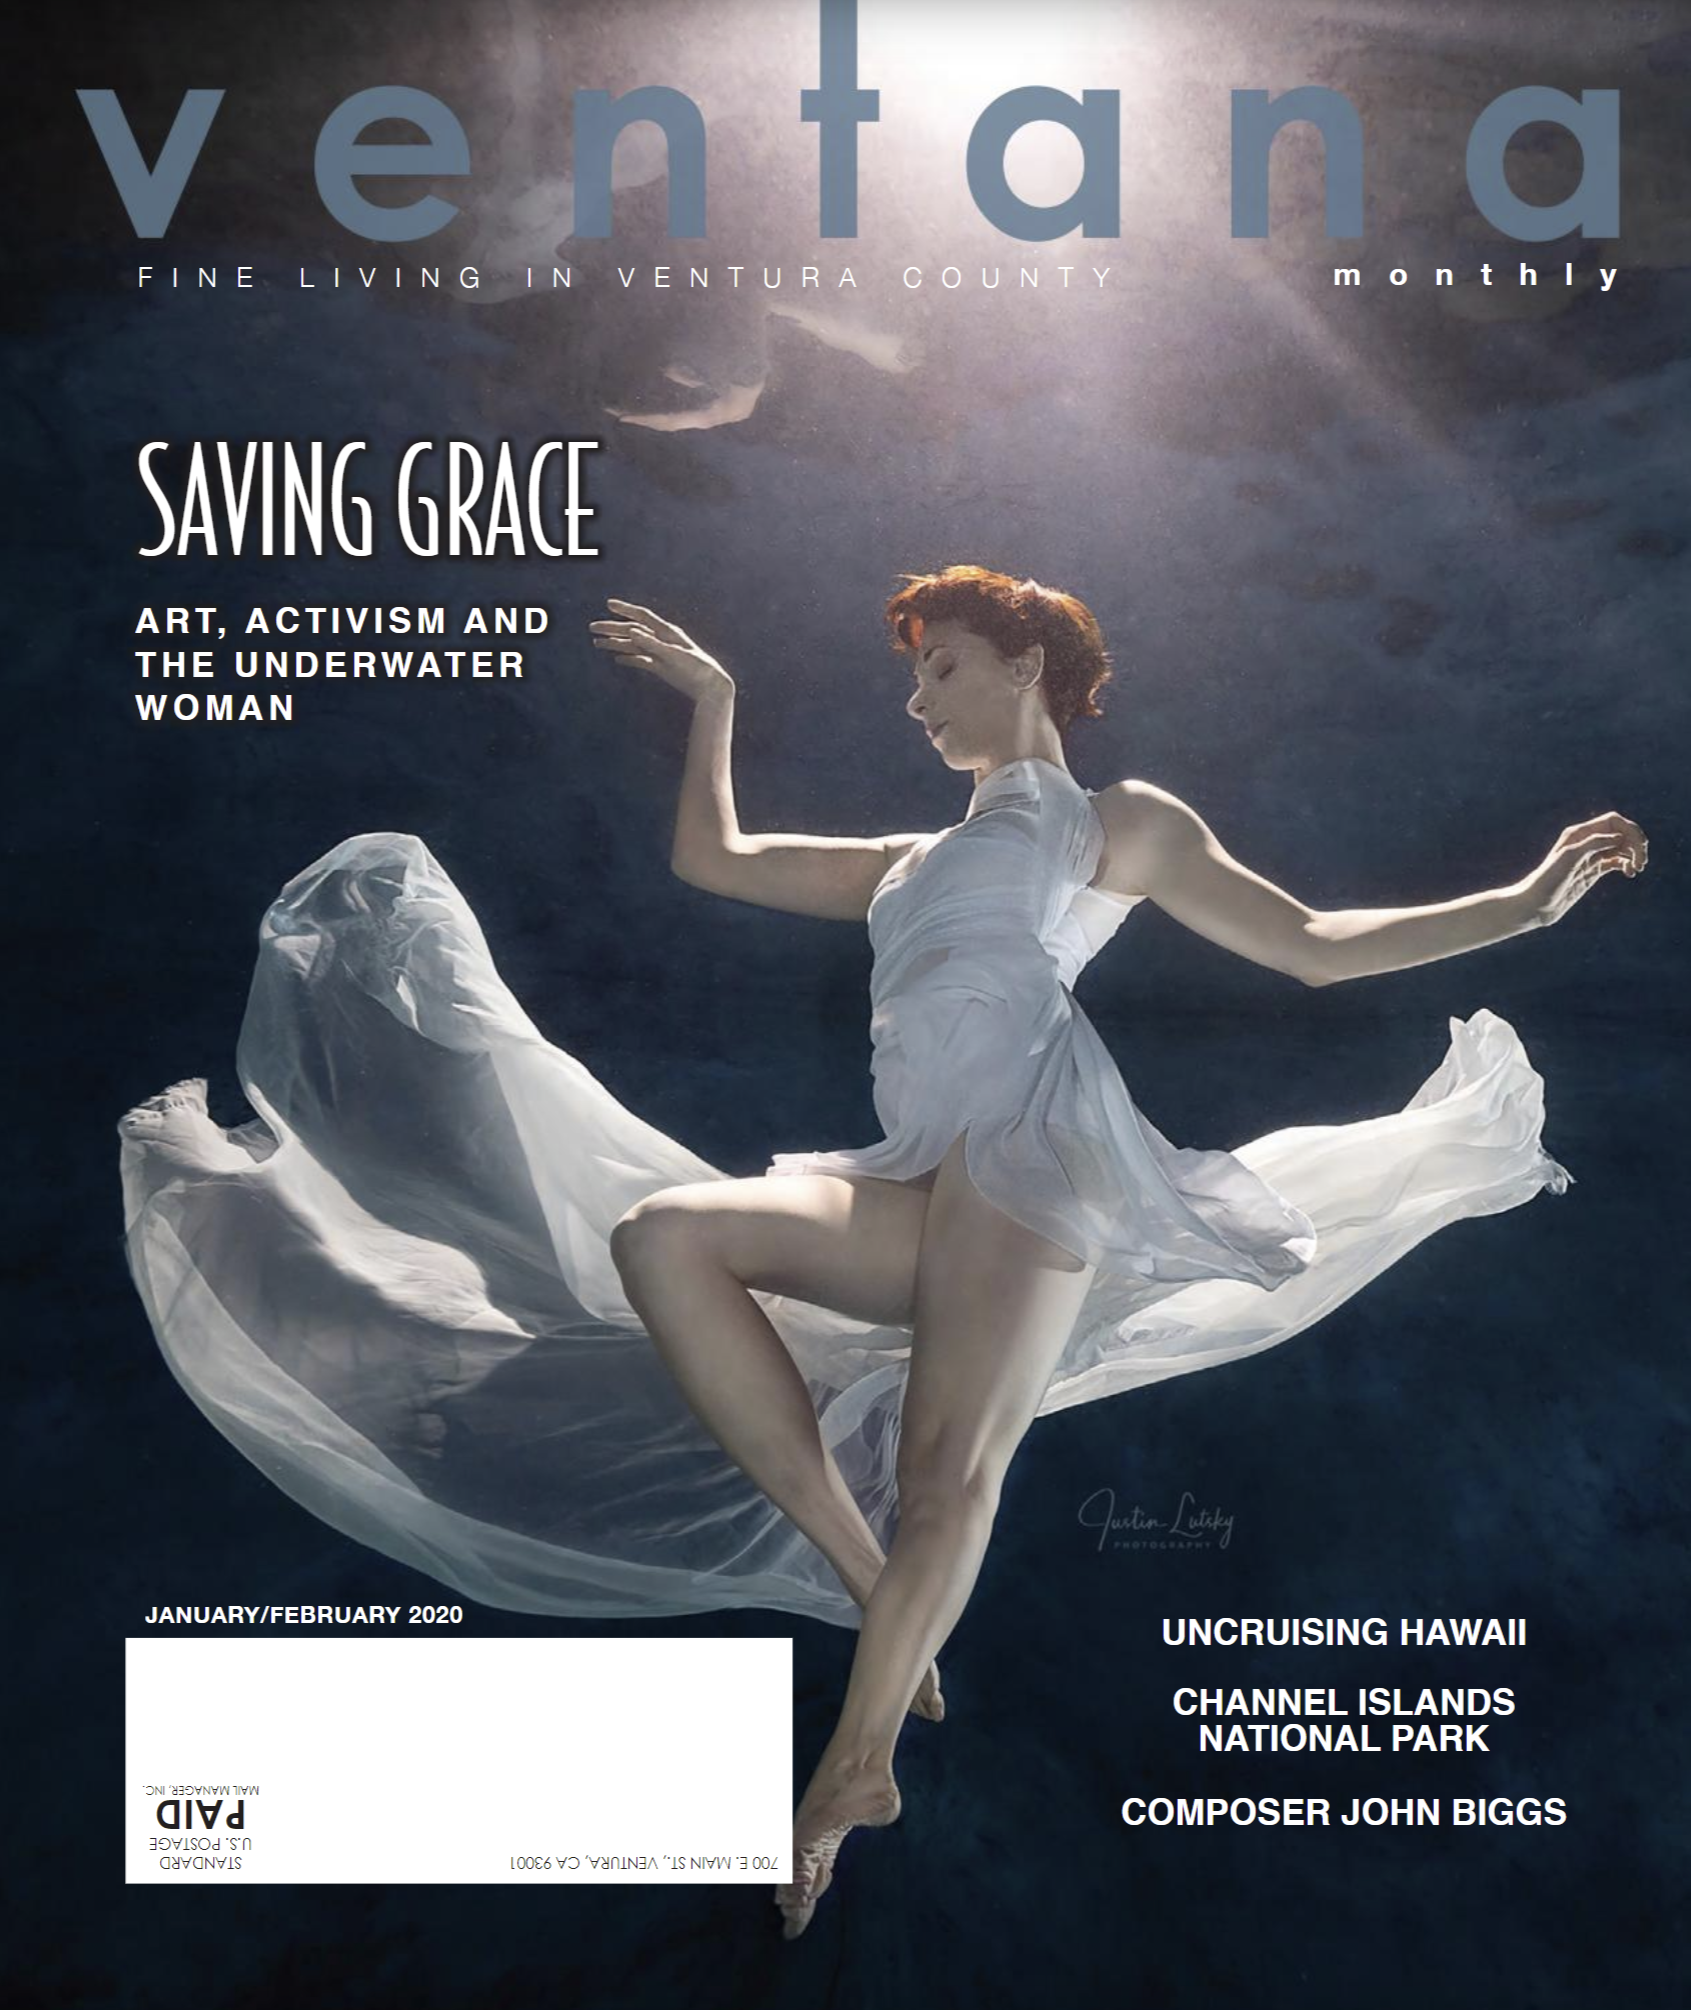 Ventana Monthly: Saving Grace